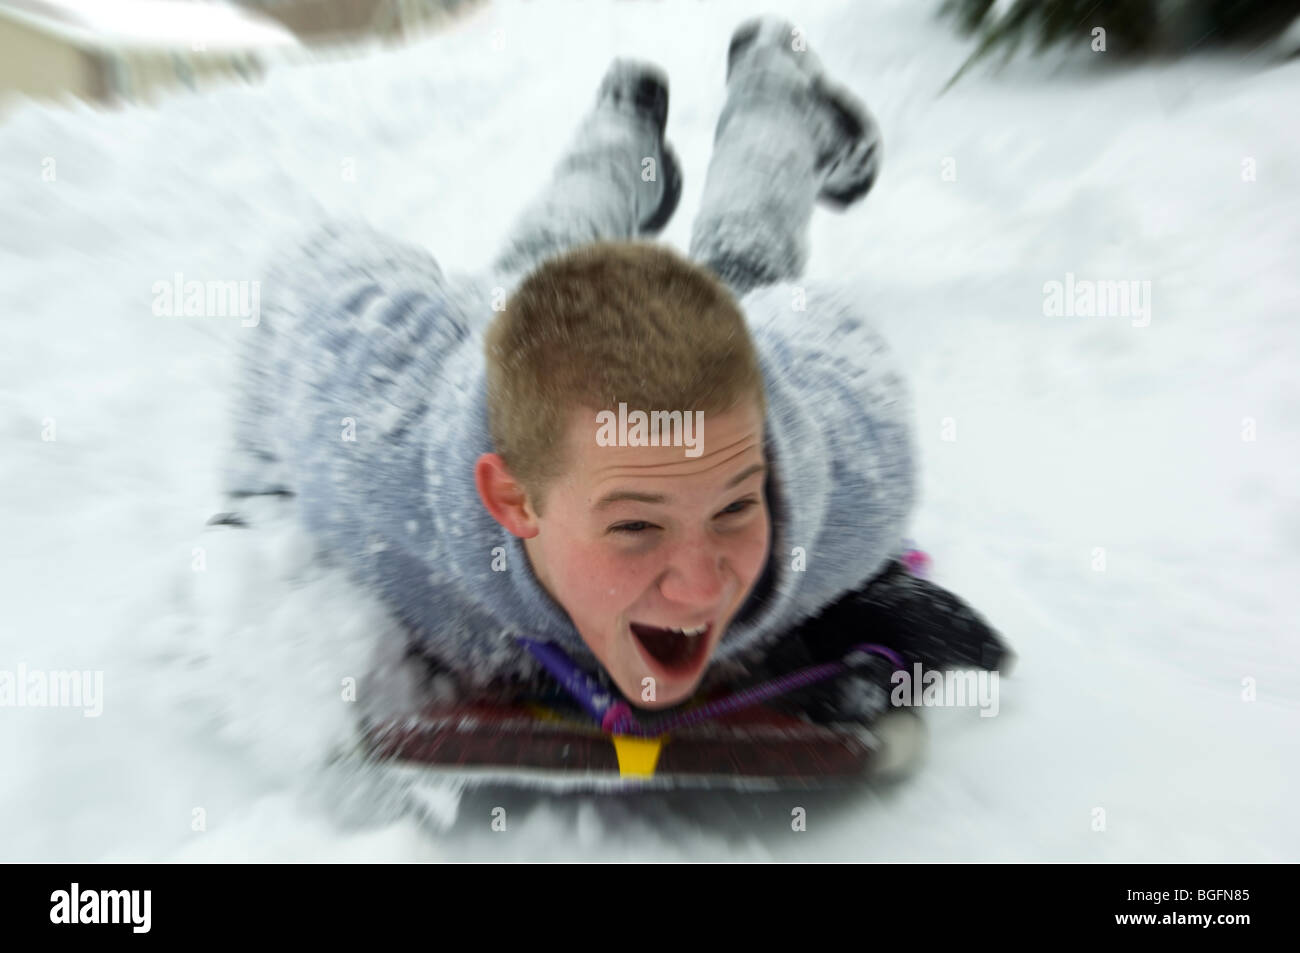 Teenage male sledding down hill - Stock Image